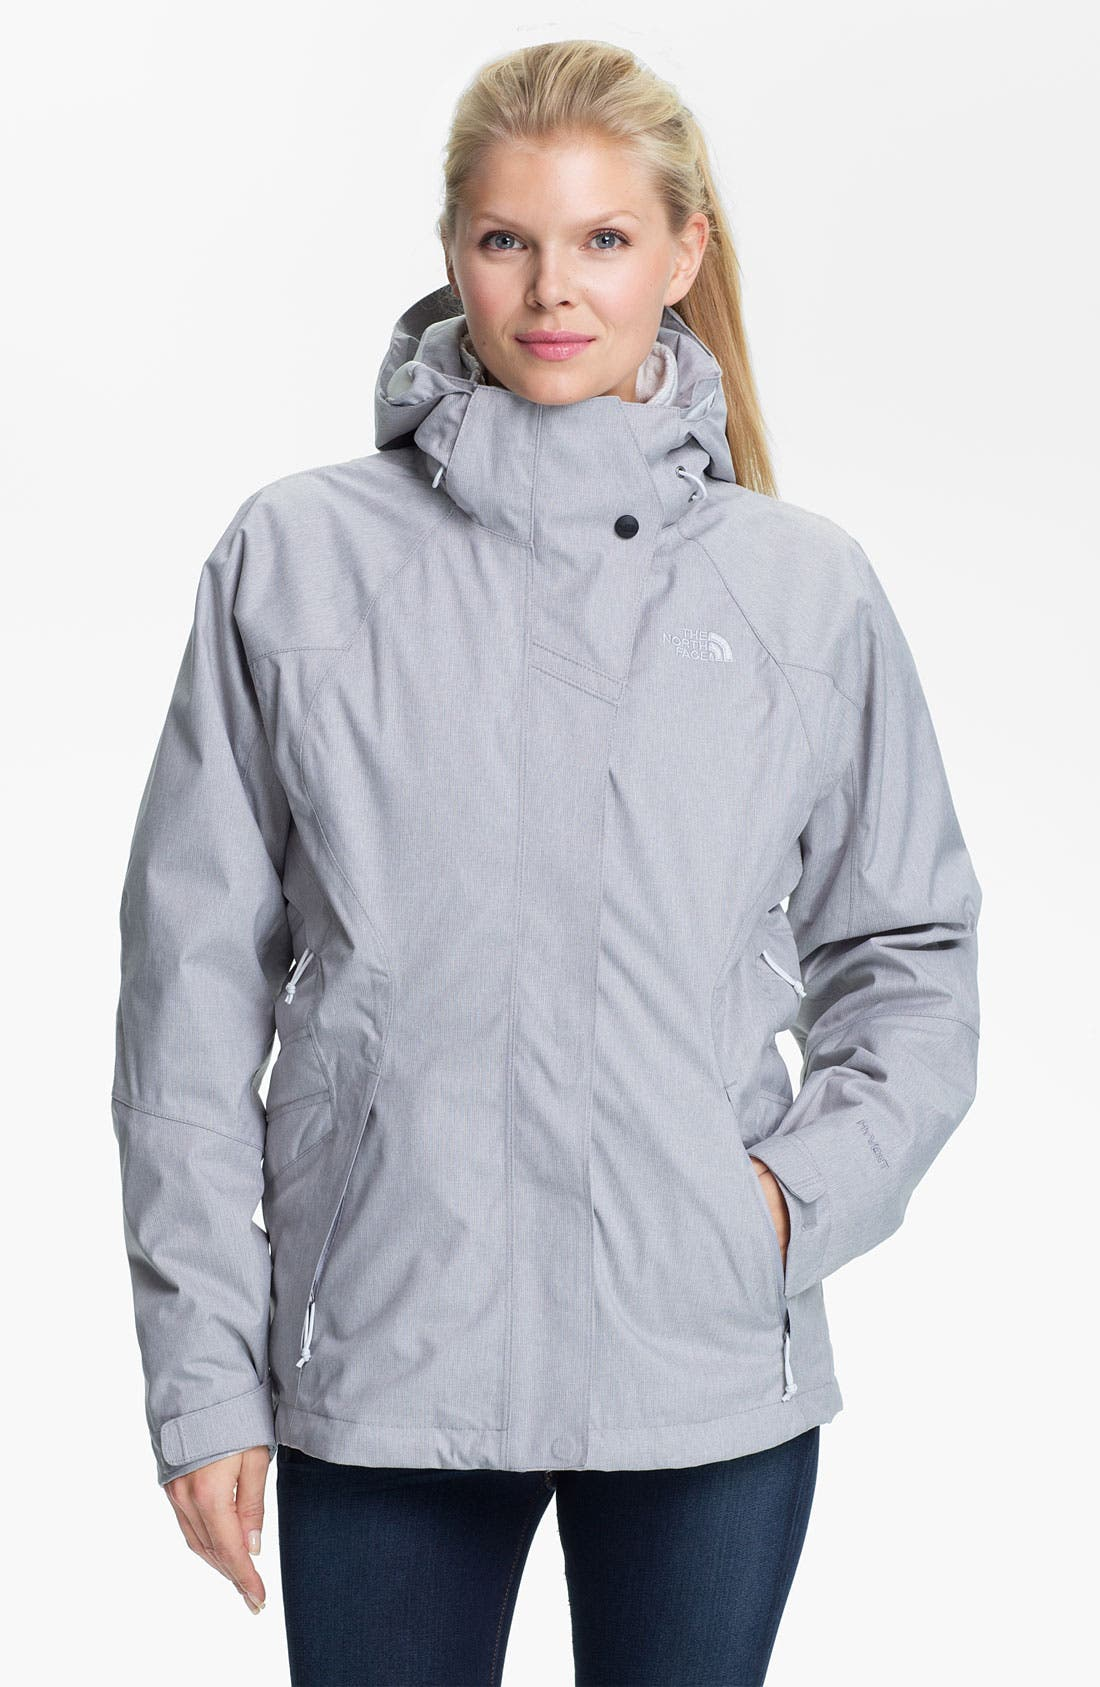 Alternate Image 1 Selected - The North Face 'Aphelion' TriClimate® 3-in-1 Jacket